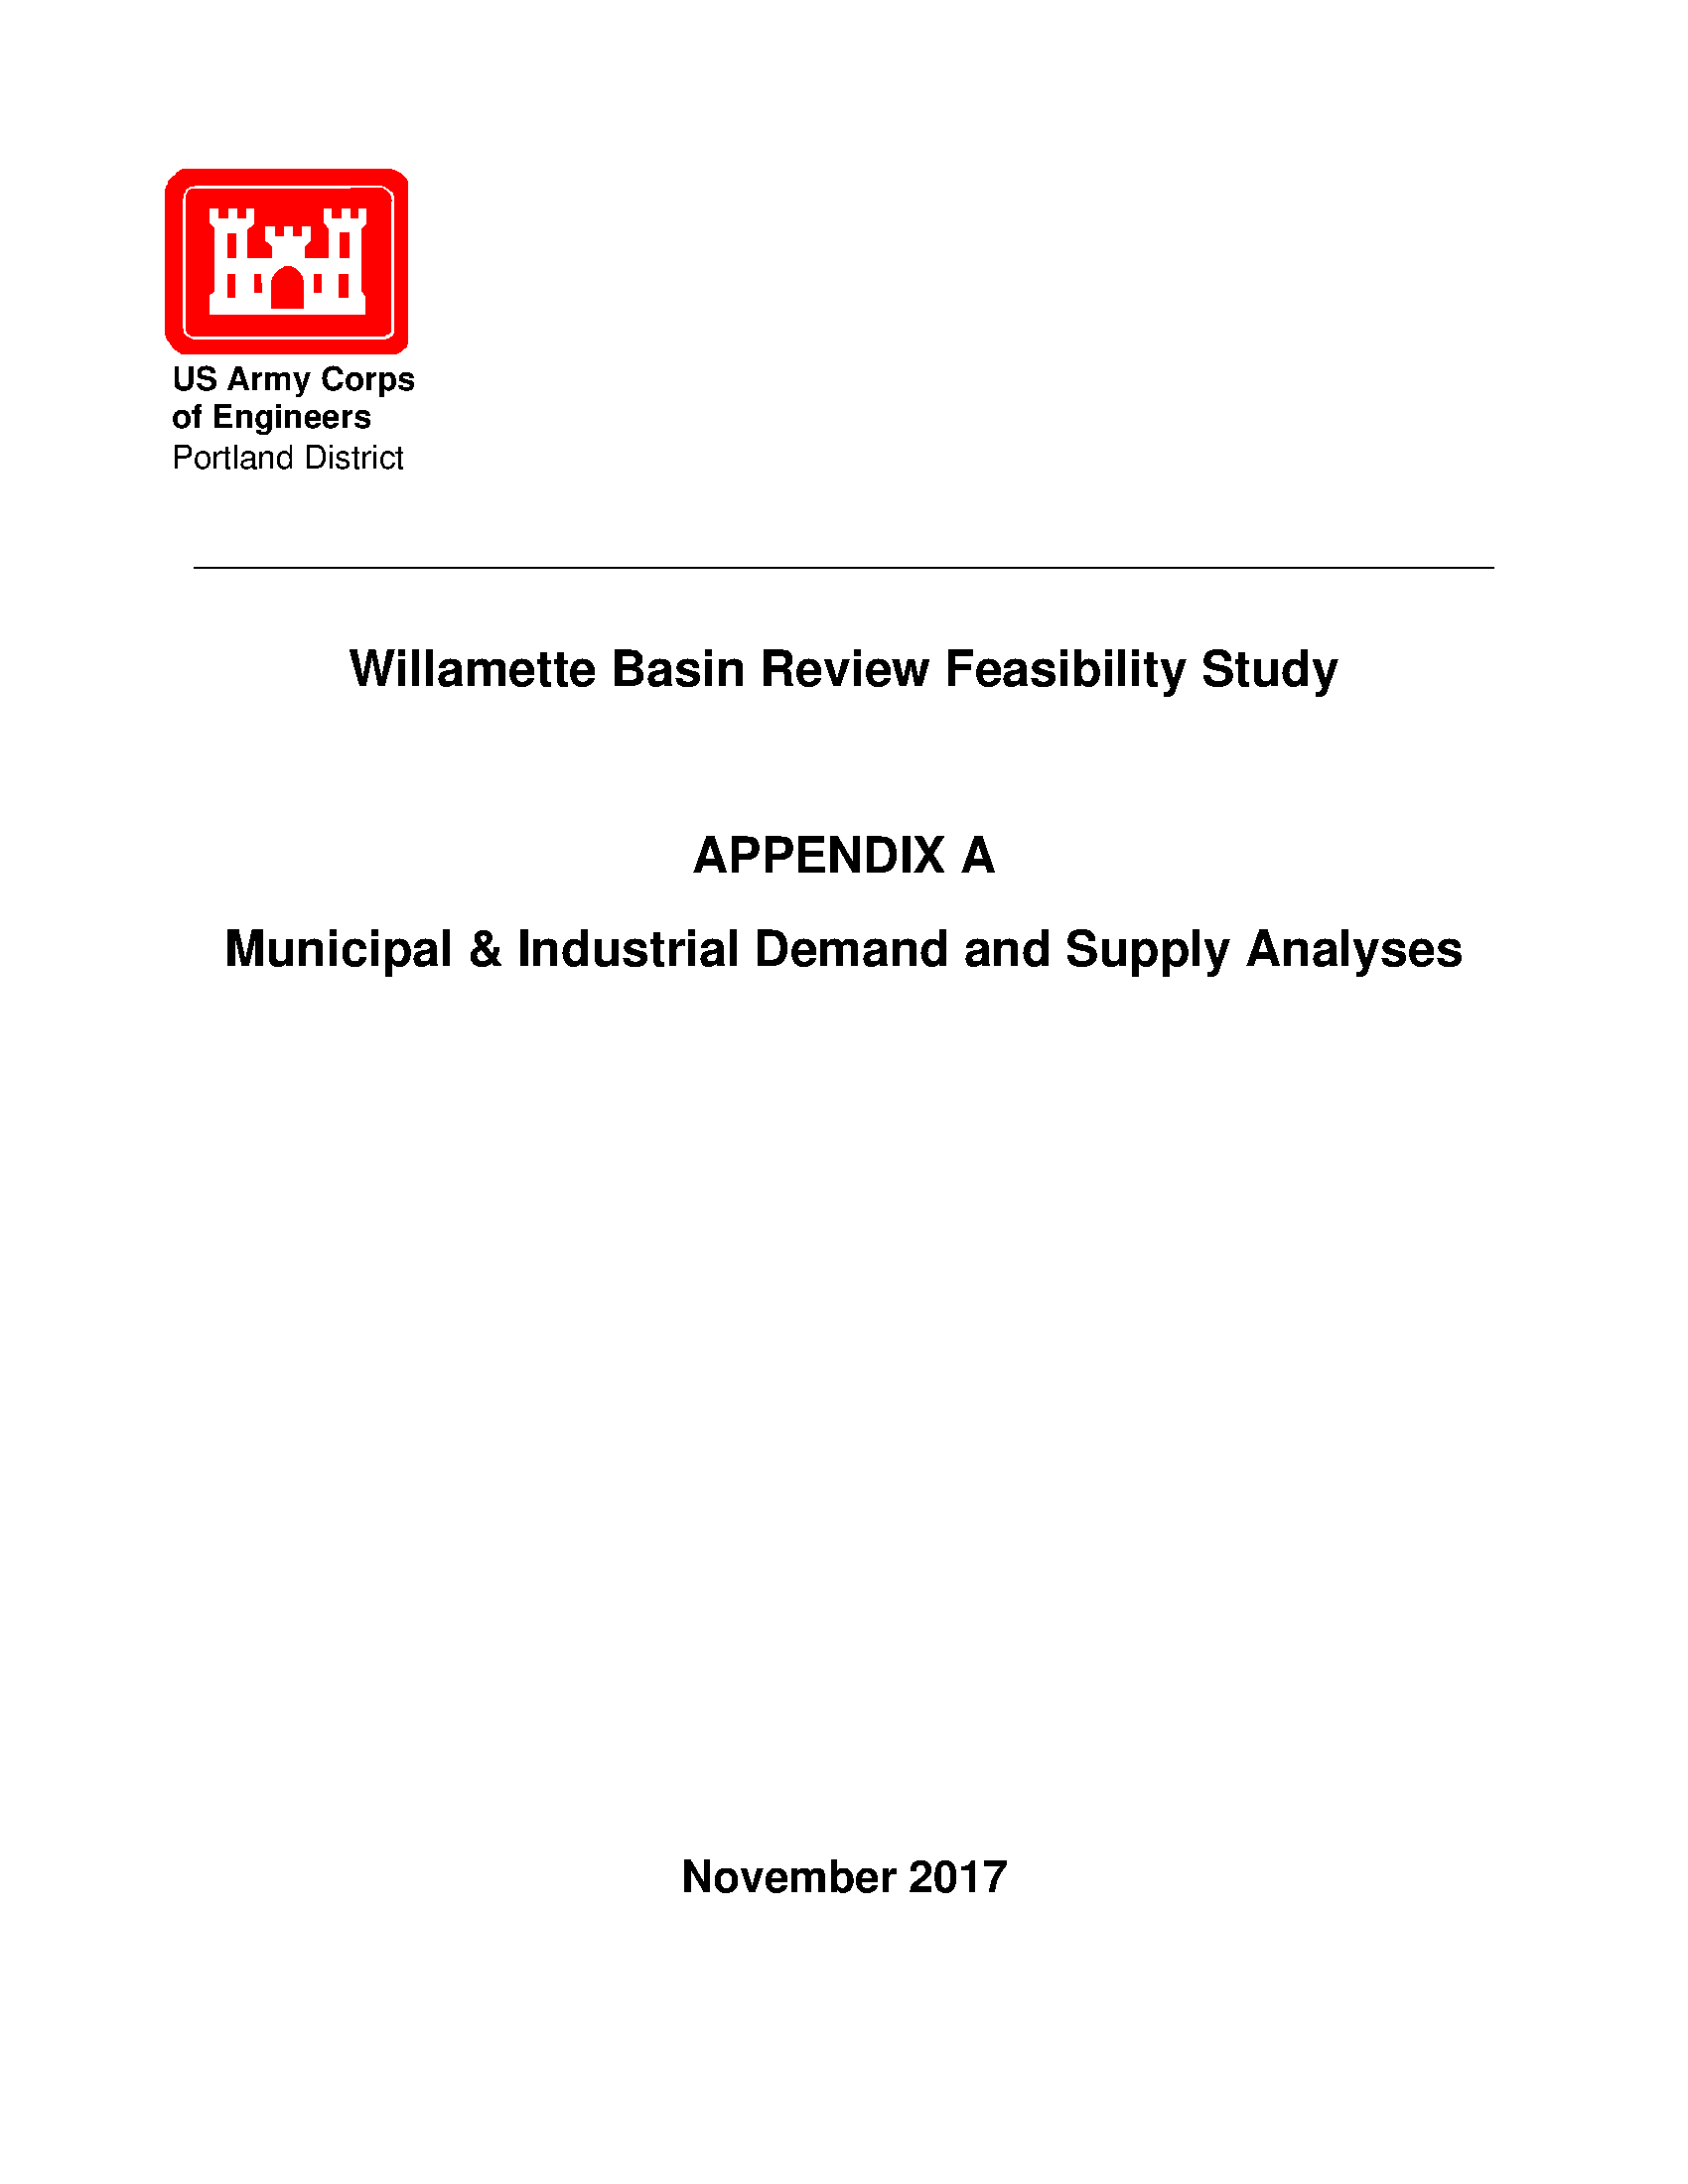 Willamette Basin Review Feasibility Study Appendices A K